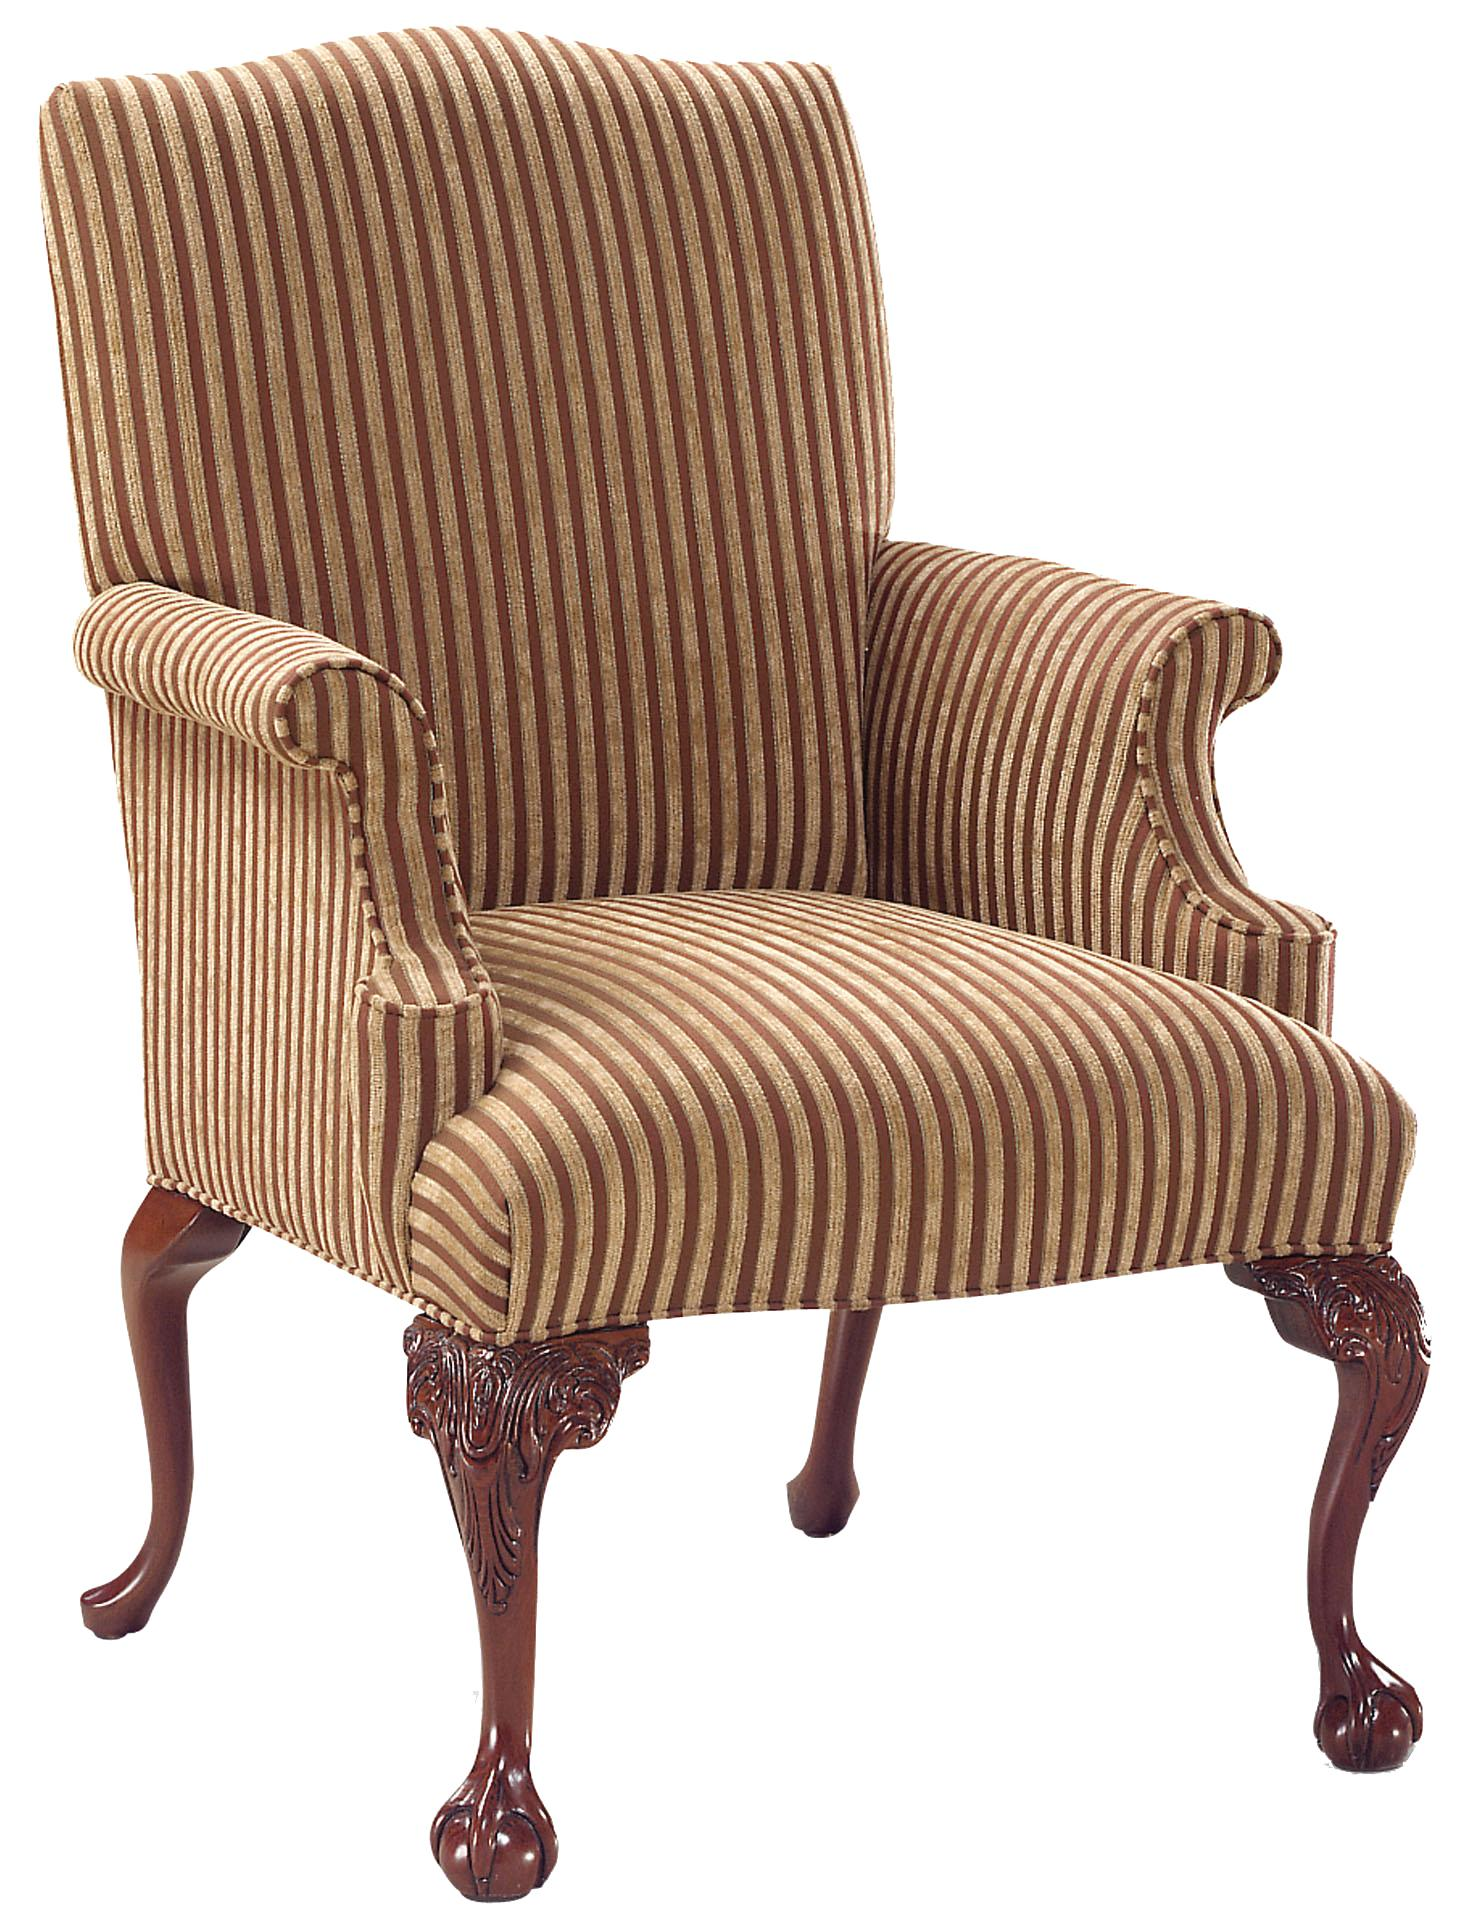 Fairfield Chairs Luxurious Accent Chair - Item Number: 5381-01